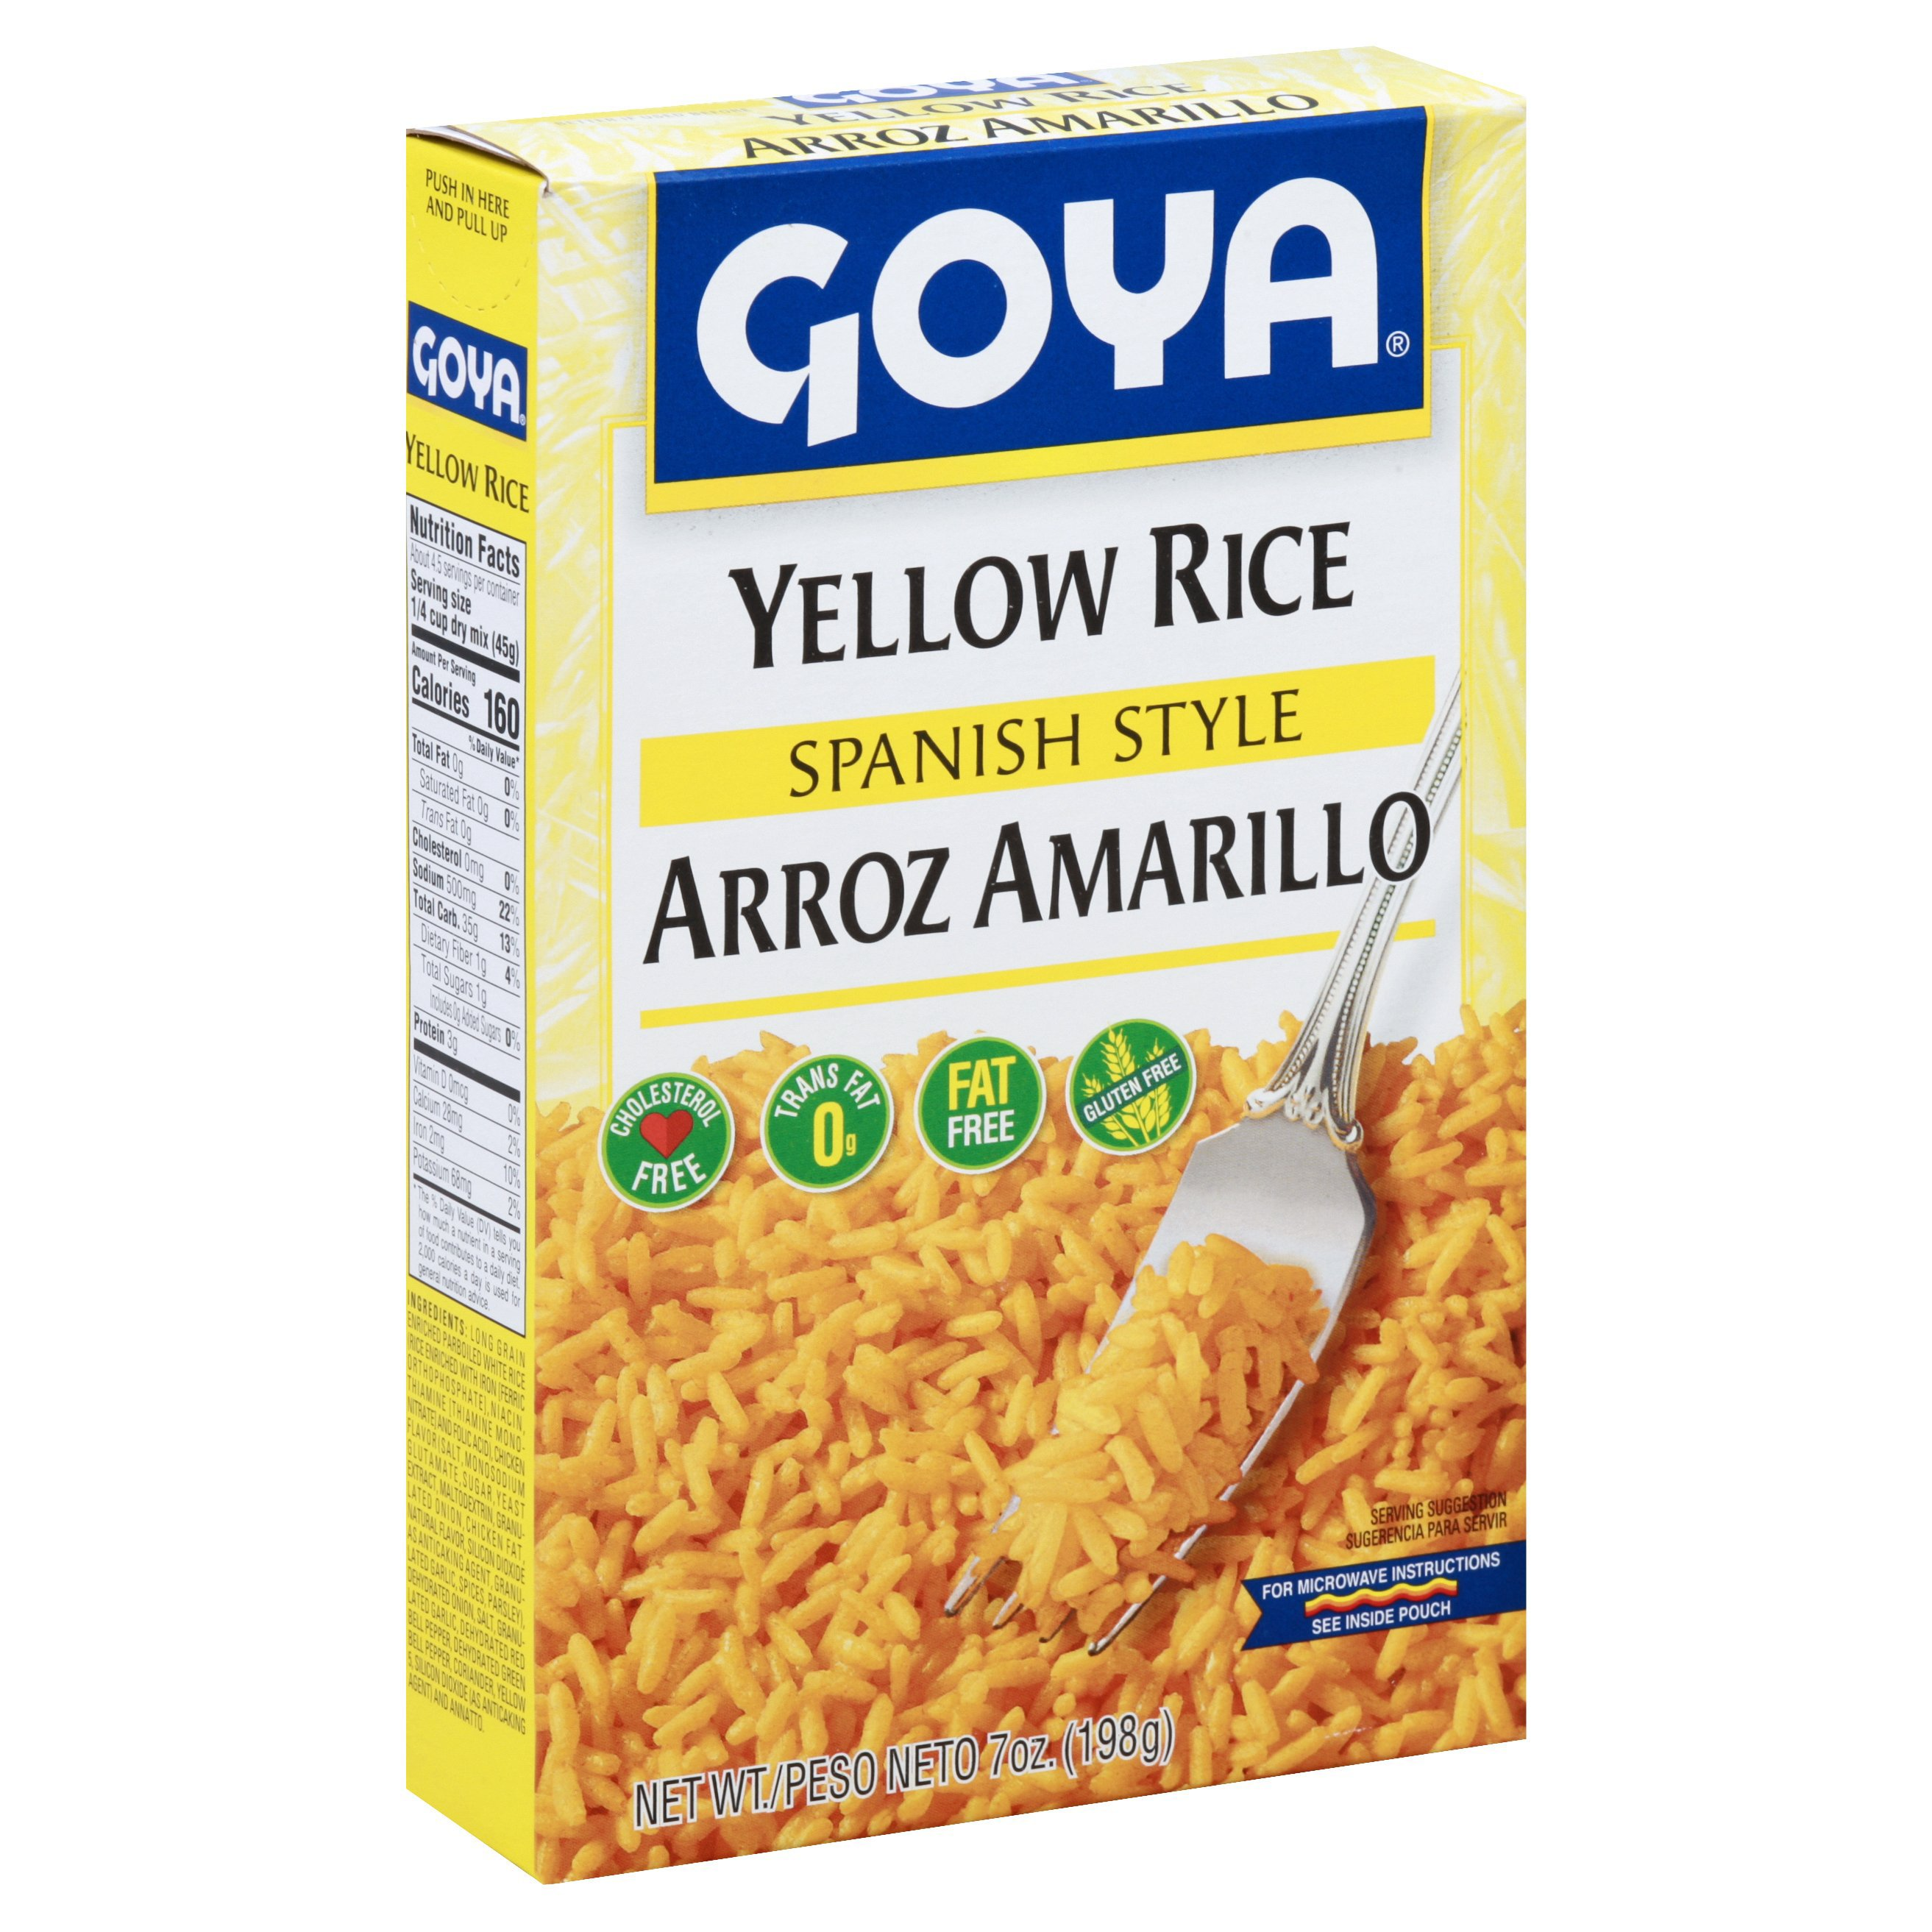 Goya Spanish Style Yellow Rice Shop Rice Grains At H E B